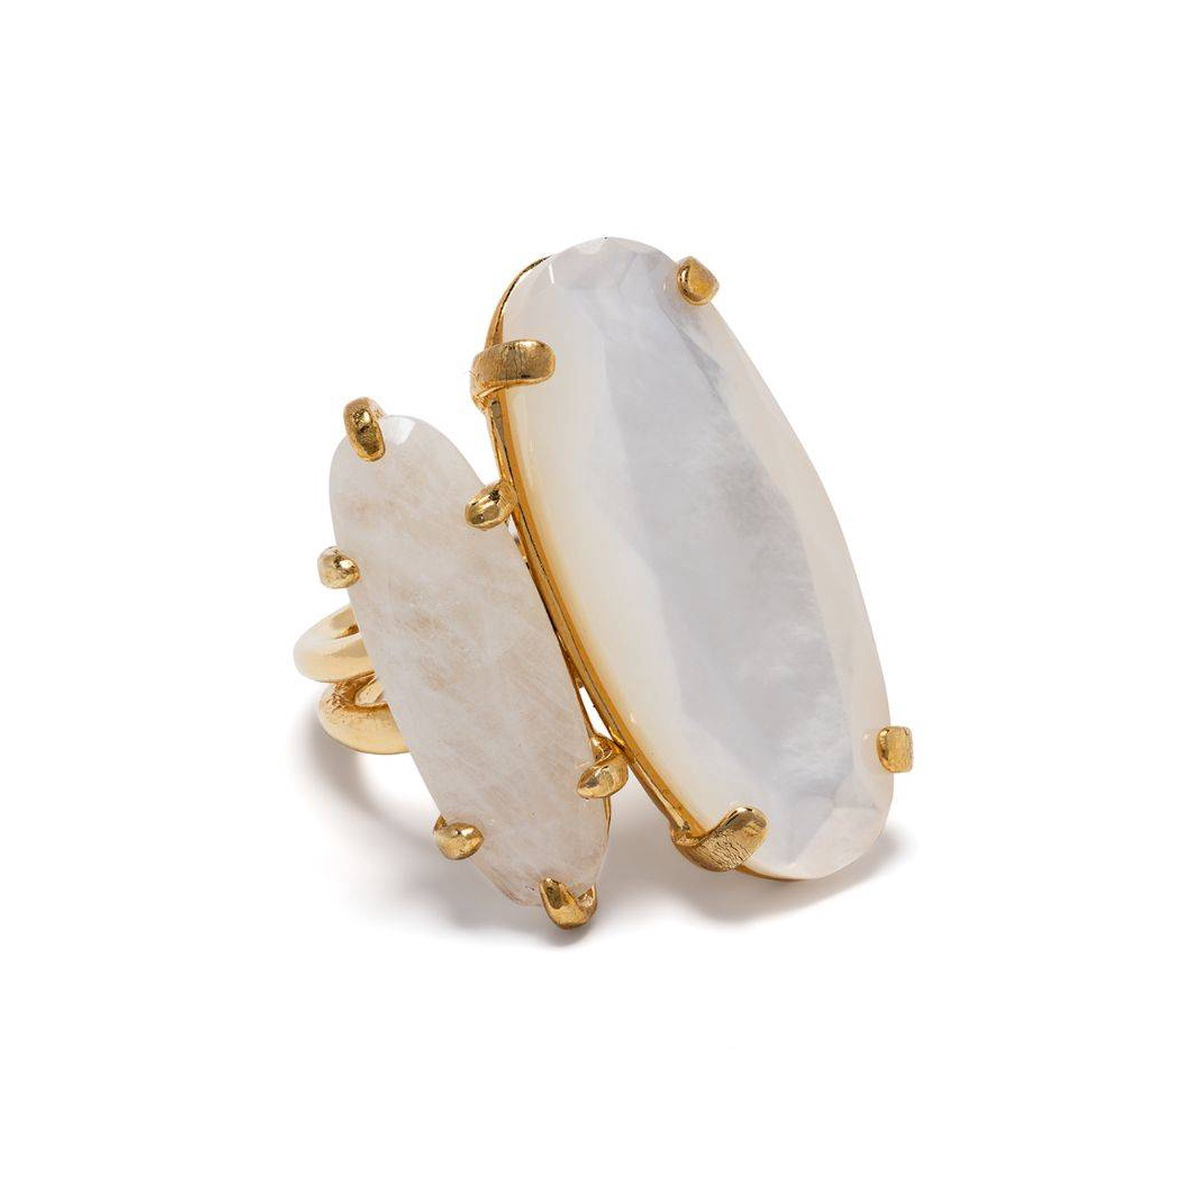 Purchasing Wouters Hendrix mother of Pearl moon feldspar ring for women 2021 new luxury